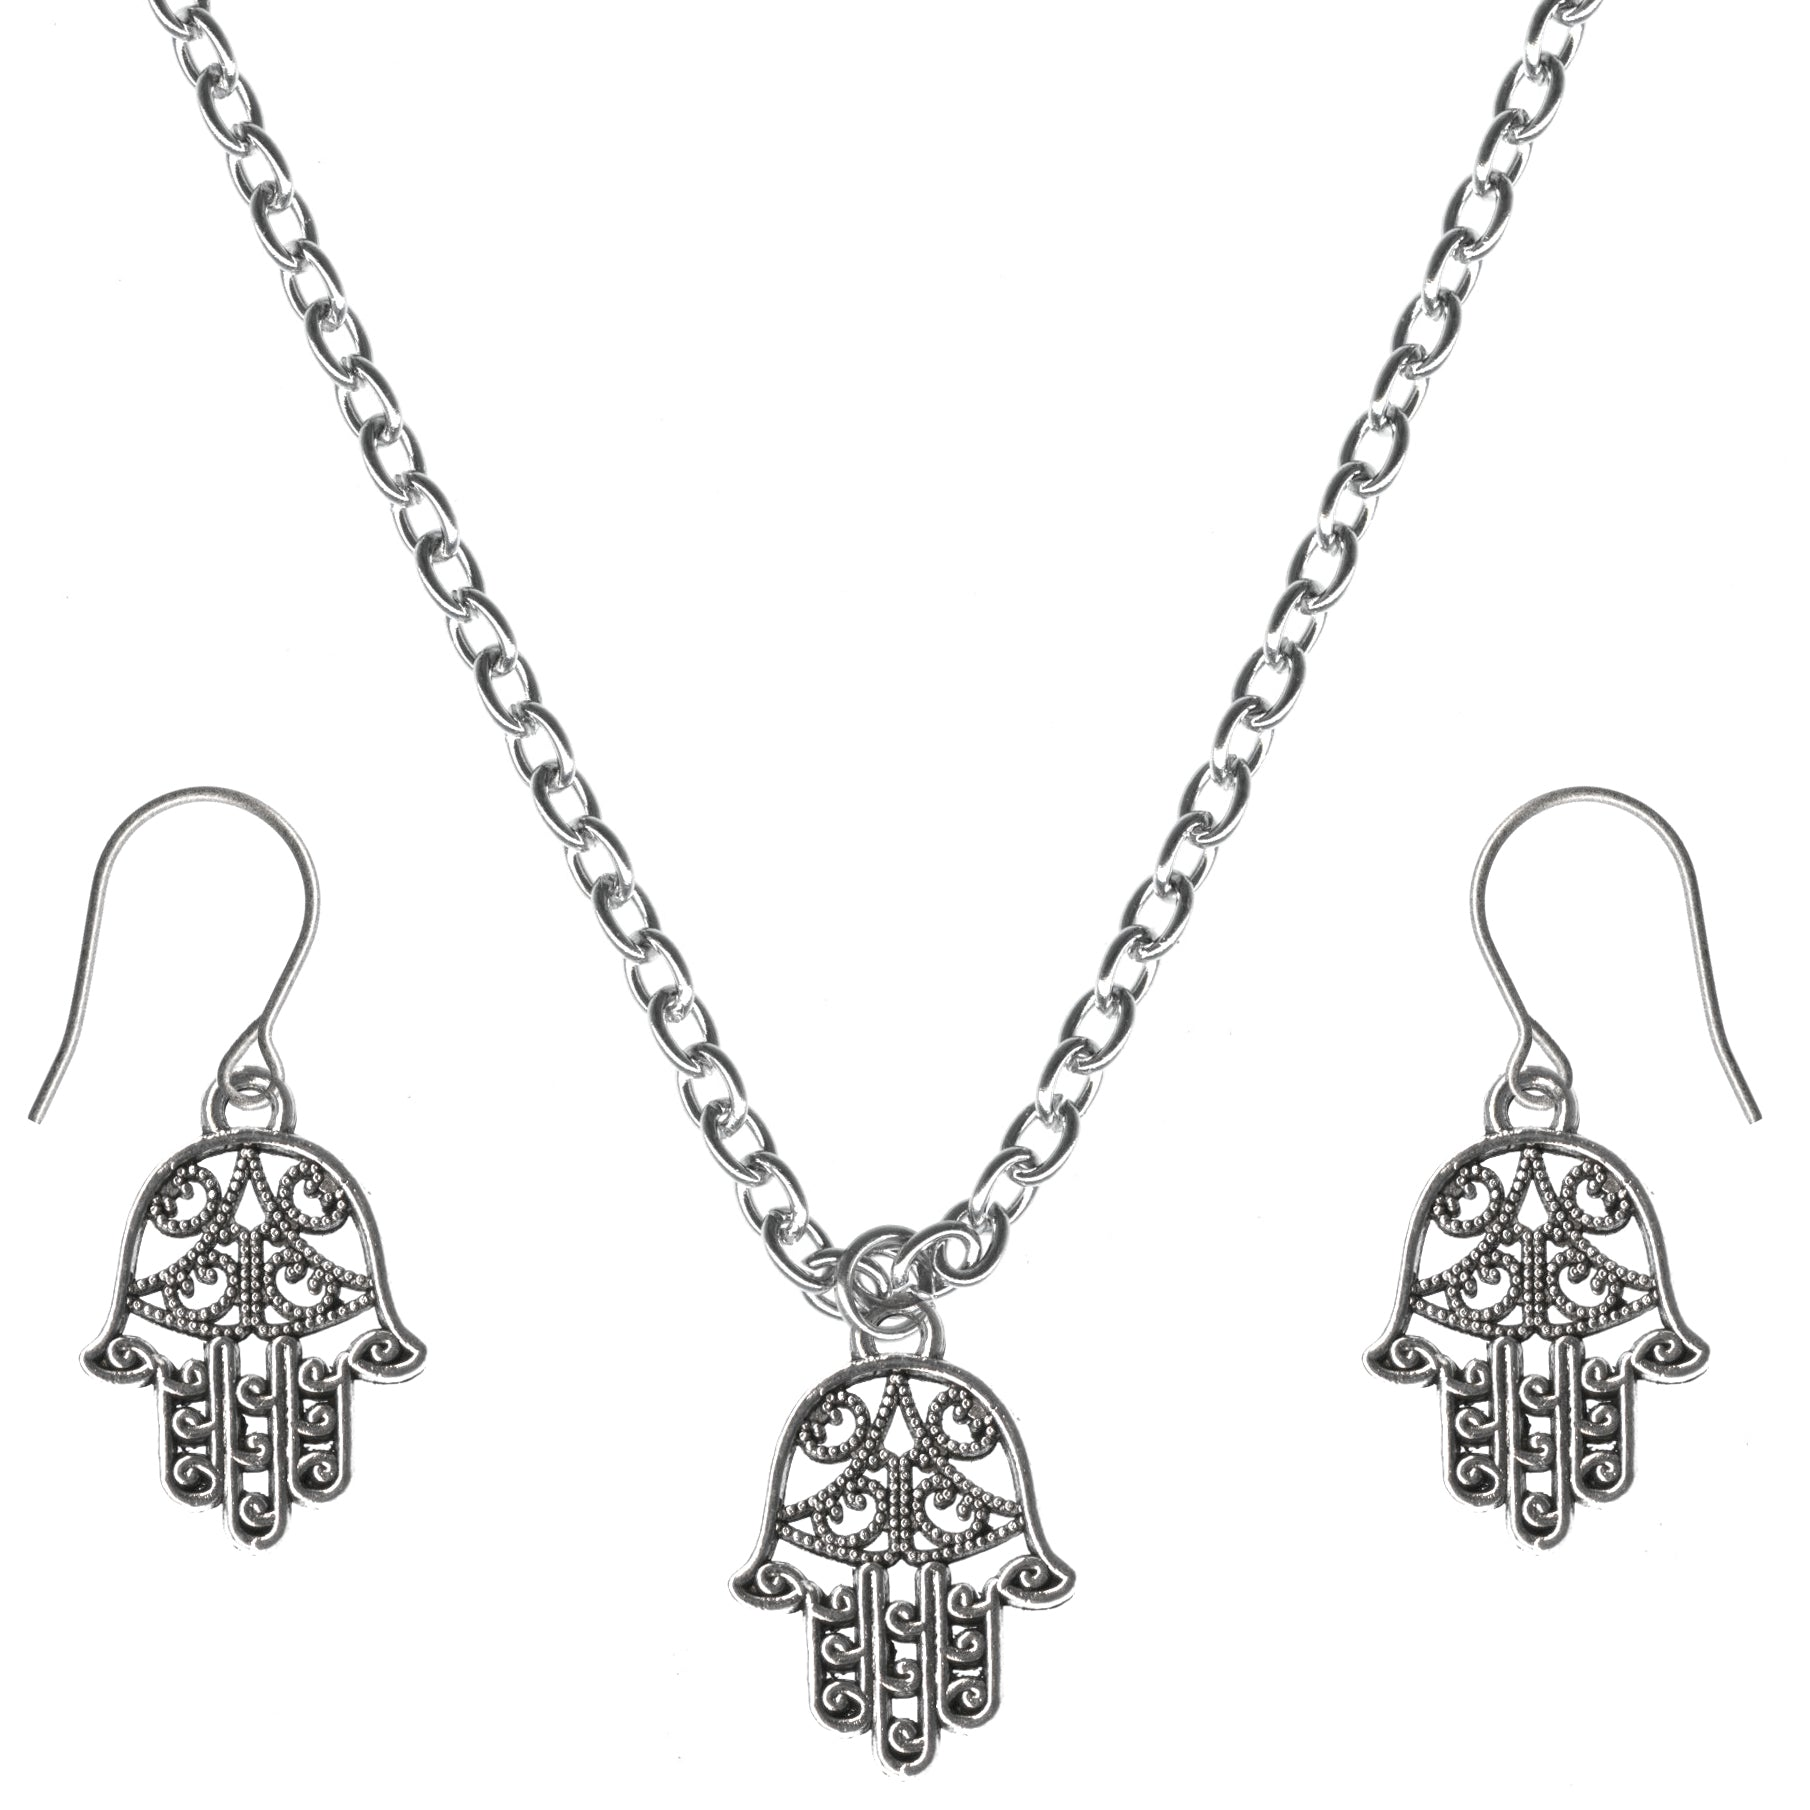 Lucky Protection Filigree Hamsa Charm Steel Chain Necklace and Hypoallergenic Titanium Earrings Set